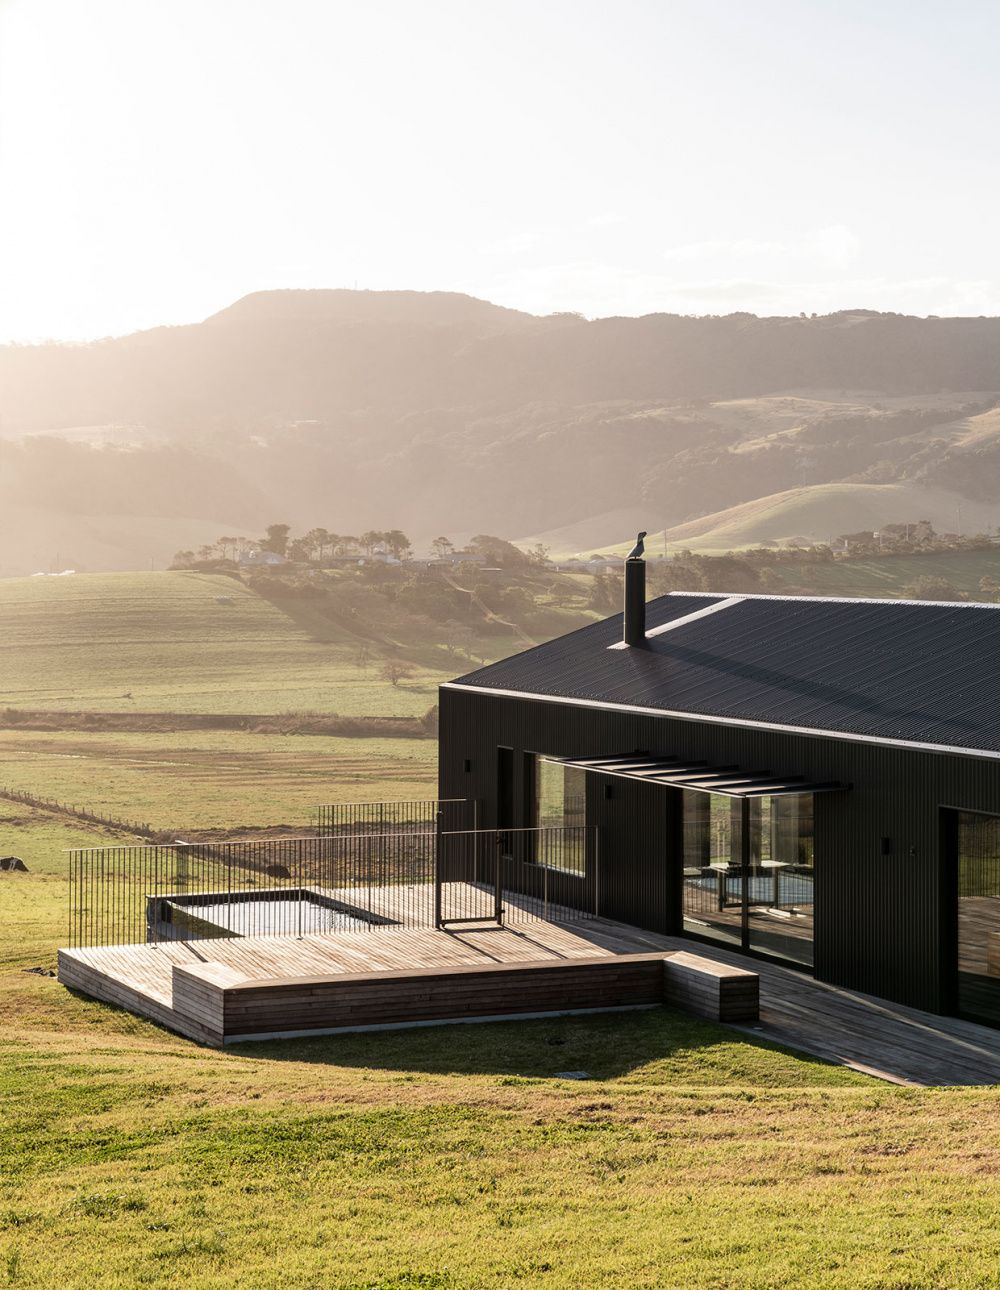 This Is No Ordinary Tin Shed! is part of architecture - Exploring new forms in Australian vernacular architecture, with the Escarpment House by Atelier Andy Carson in Gerringong, NSW